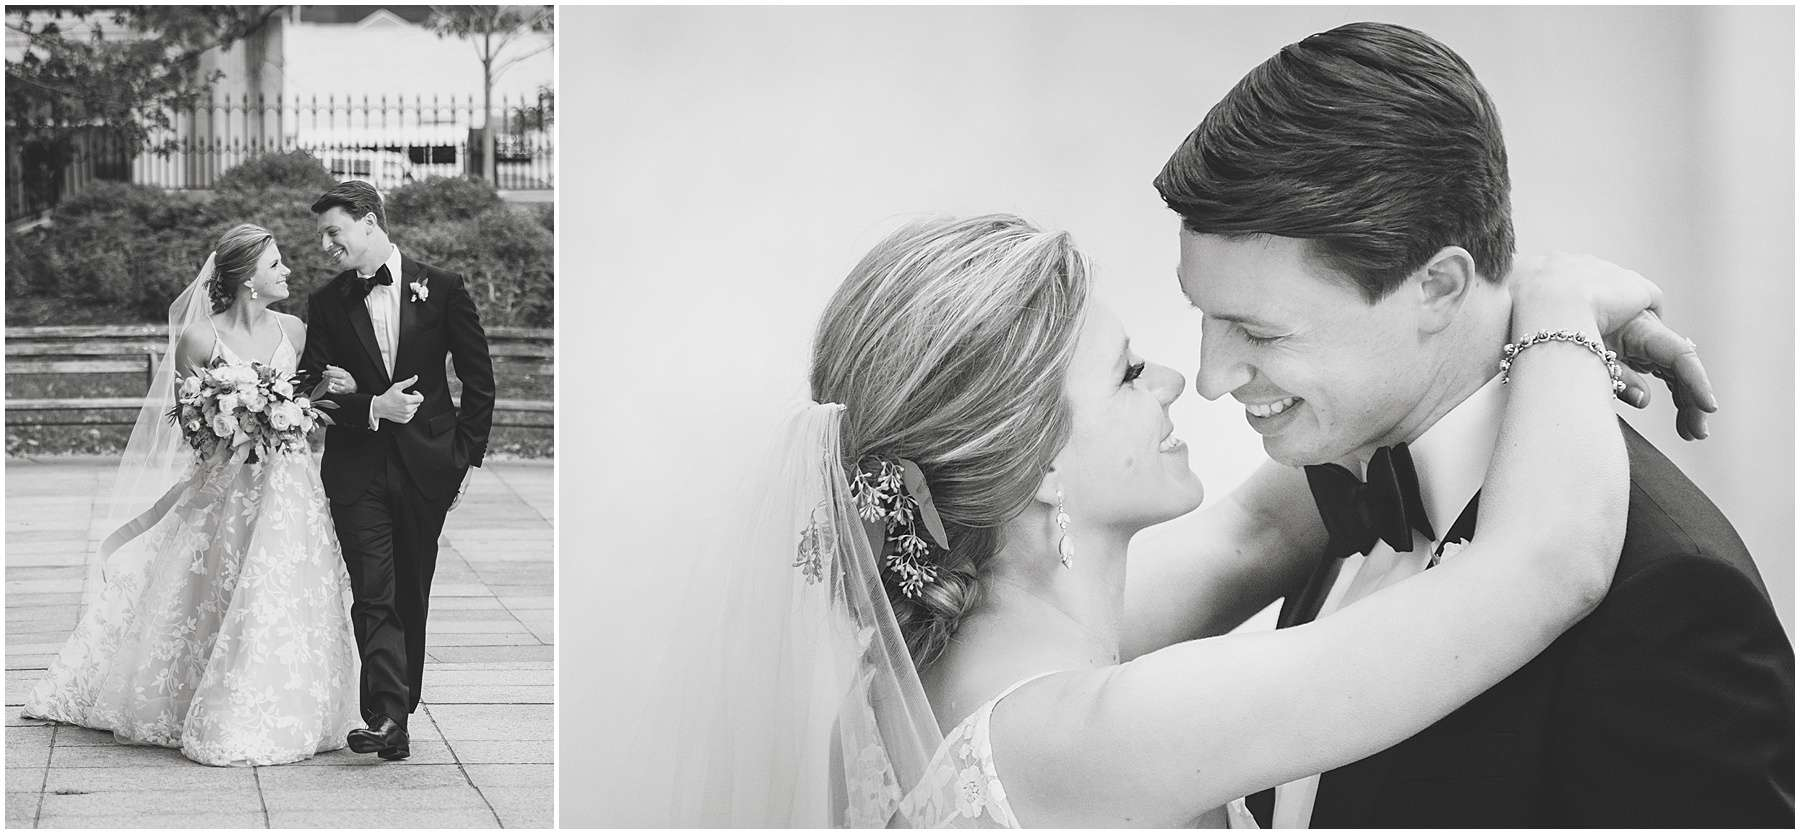 Wedding at the Ohio Statehouse | Columbus Ohio Weddings 140